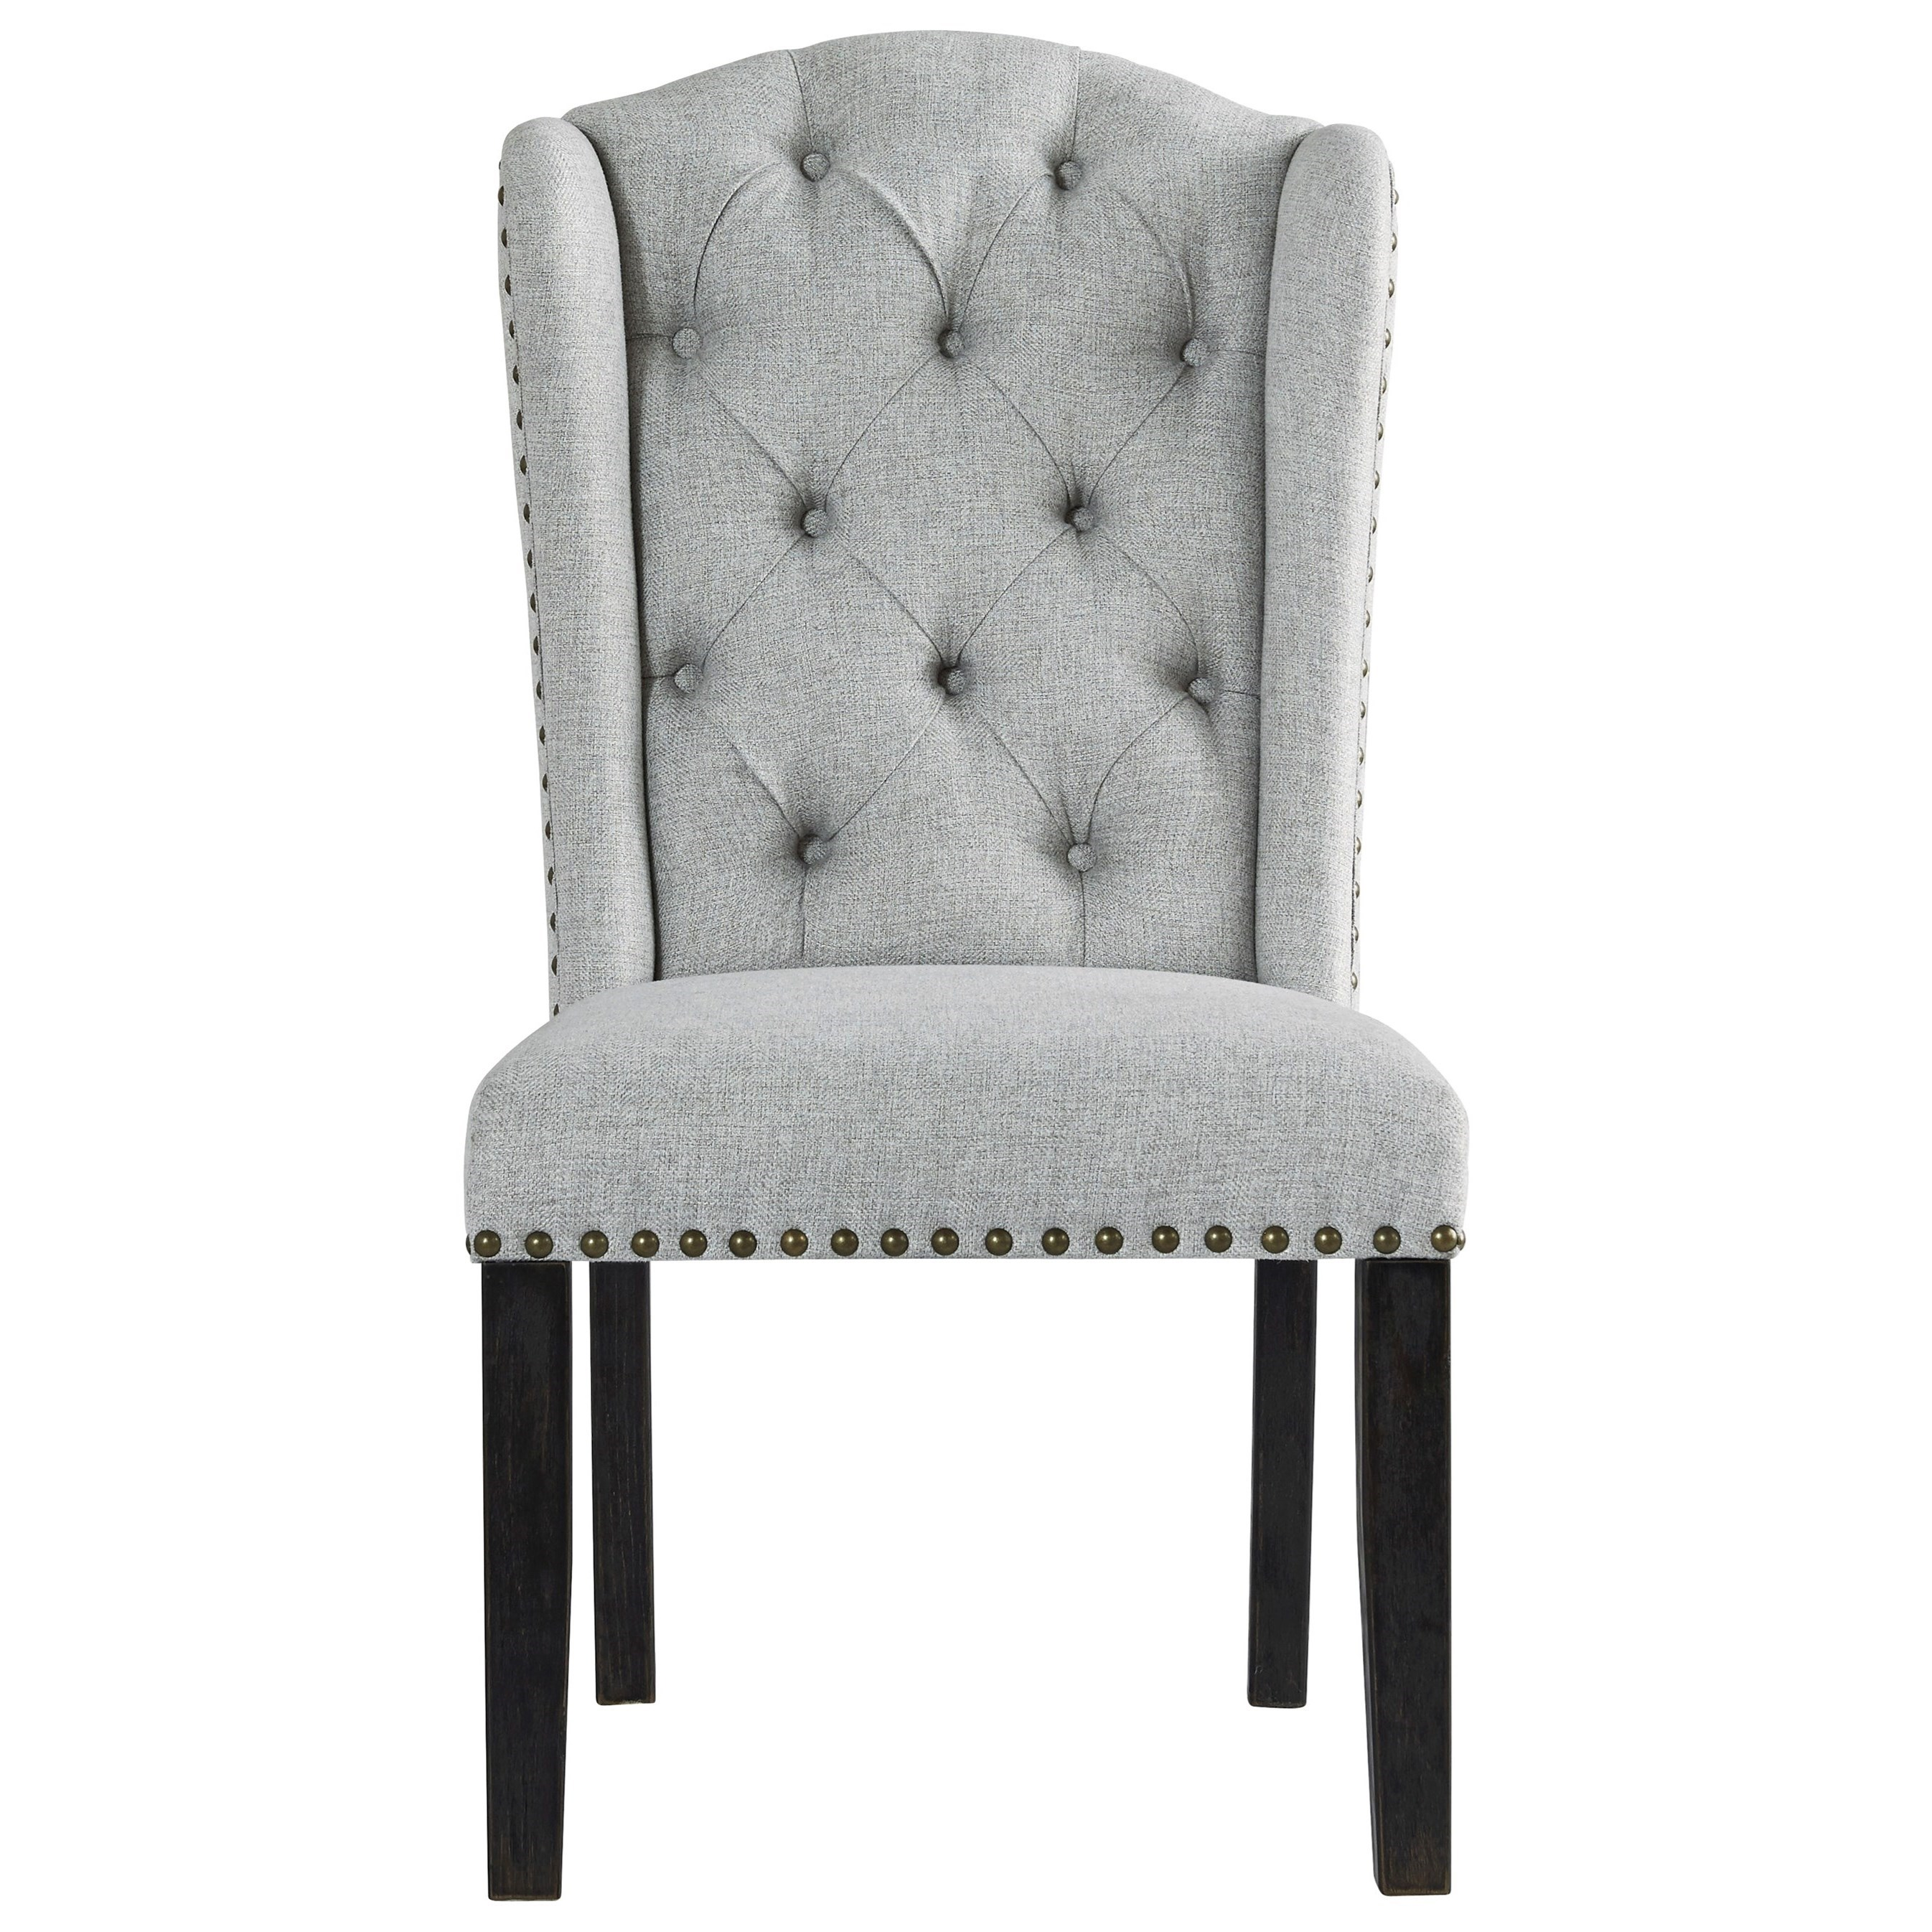 Ashley Furniture Jeanette Dining Upholstered Side Chair With Tufted Wingback And Nailhead Trim A1 Furniture Mattress Dining Side Chairs